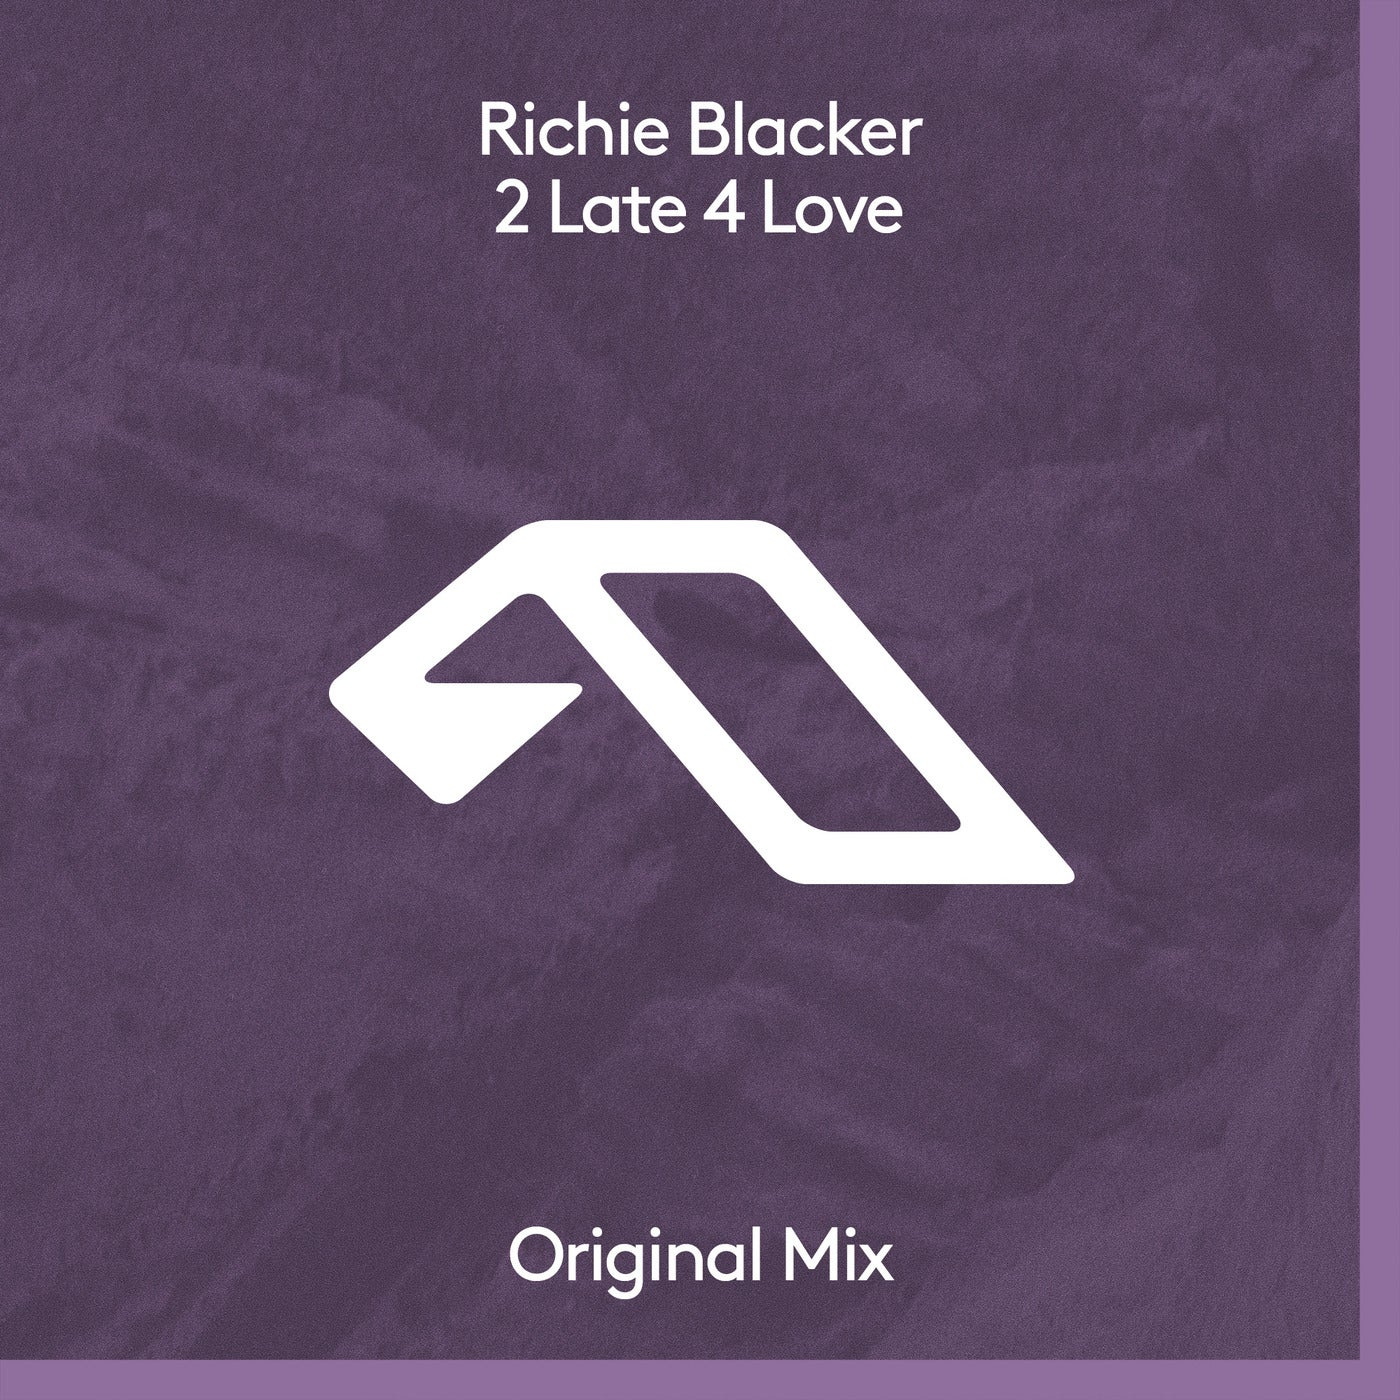 2 Late 4 Love (Extended Mix)